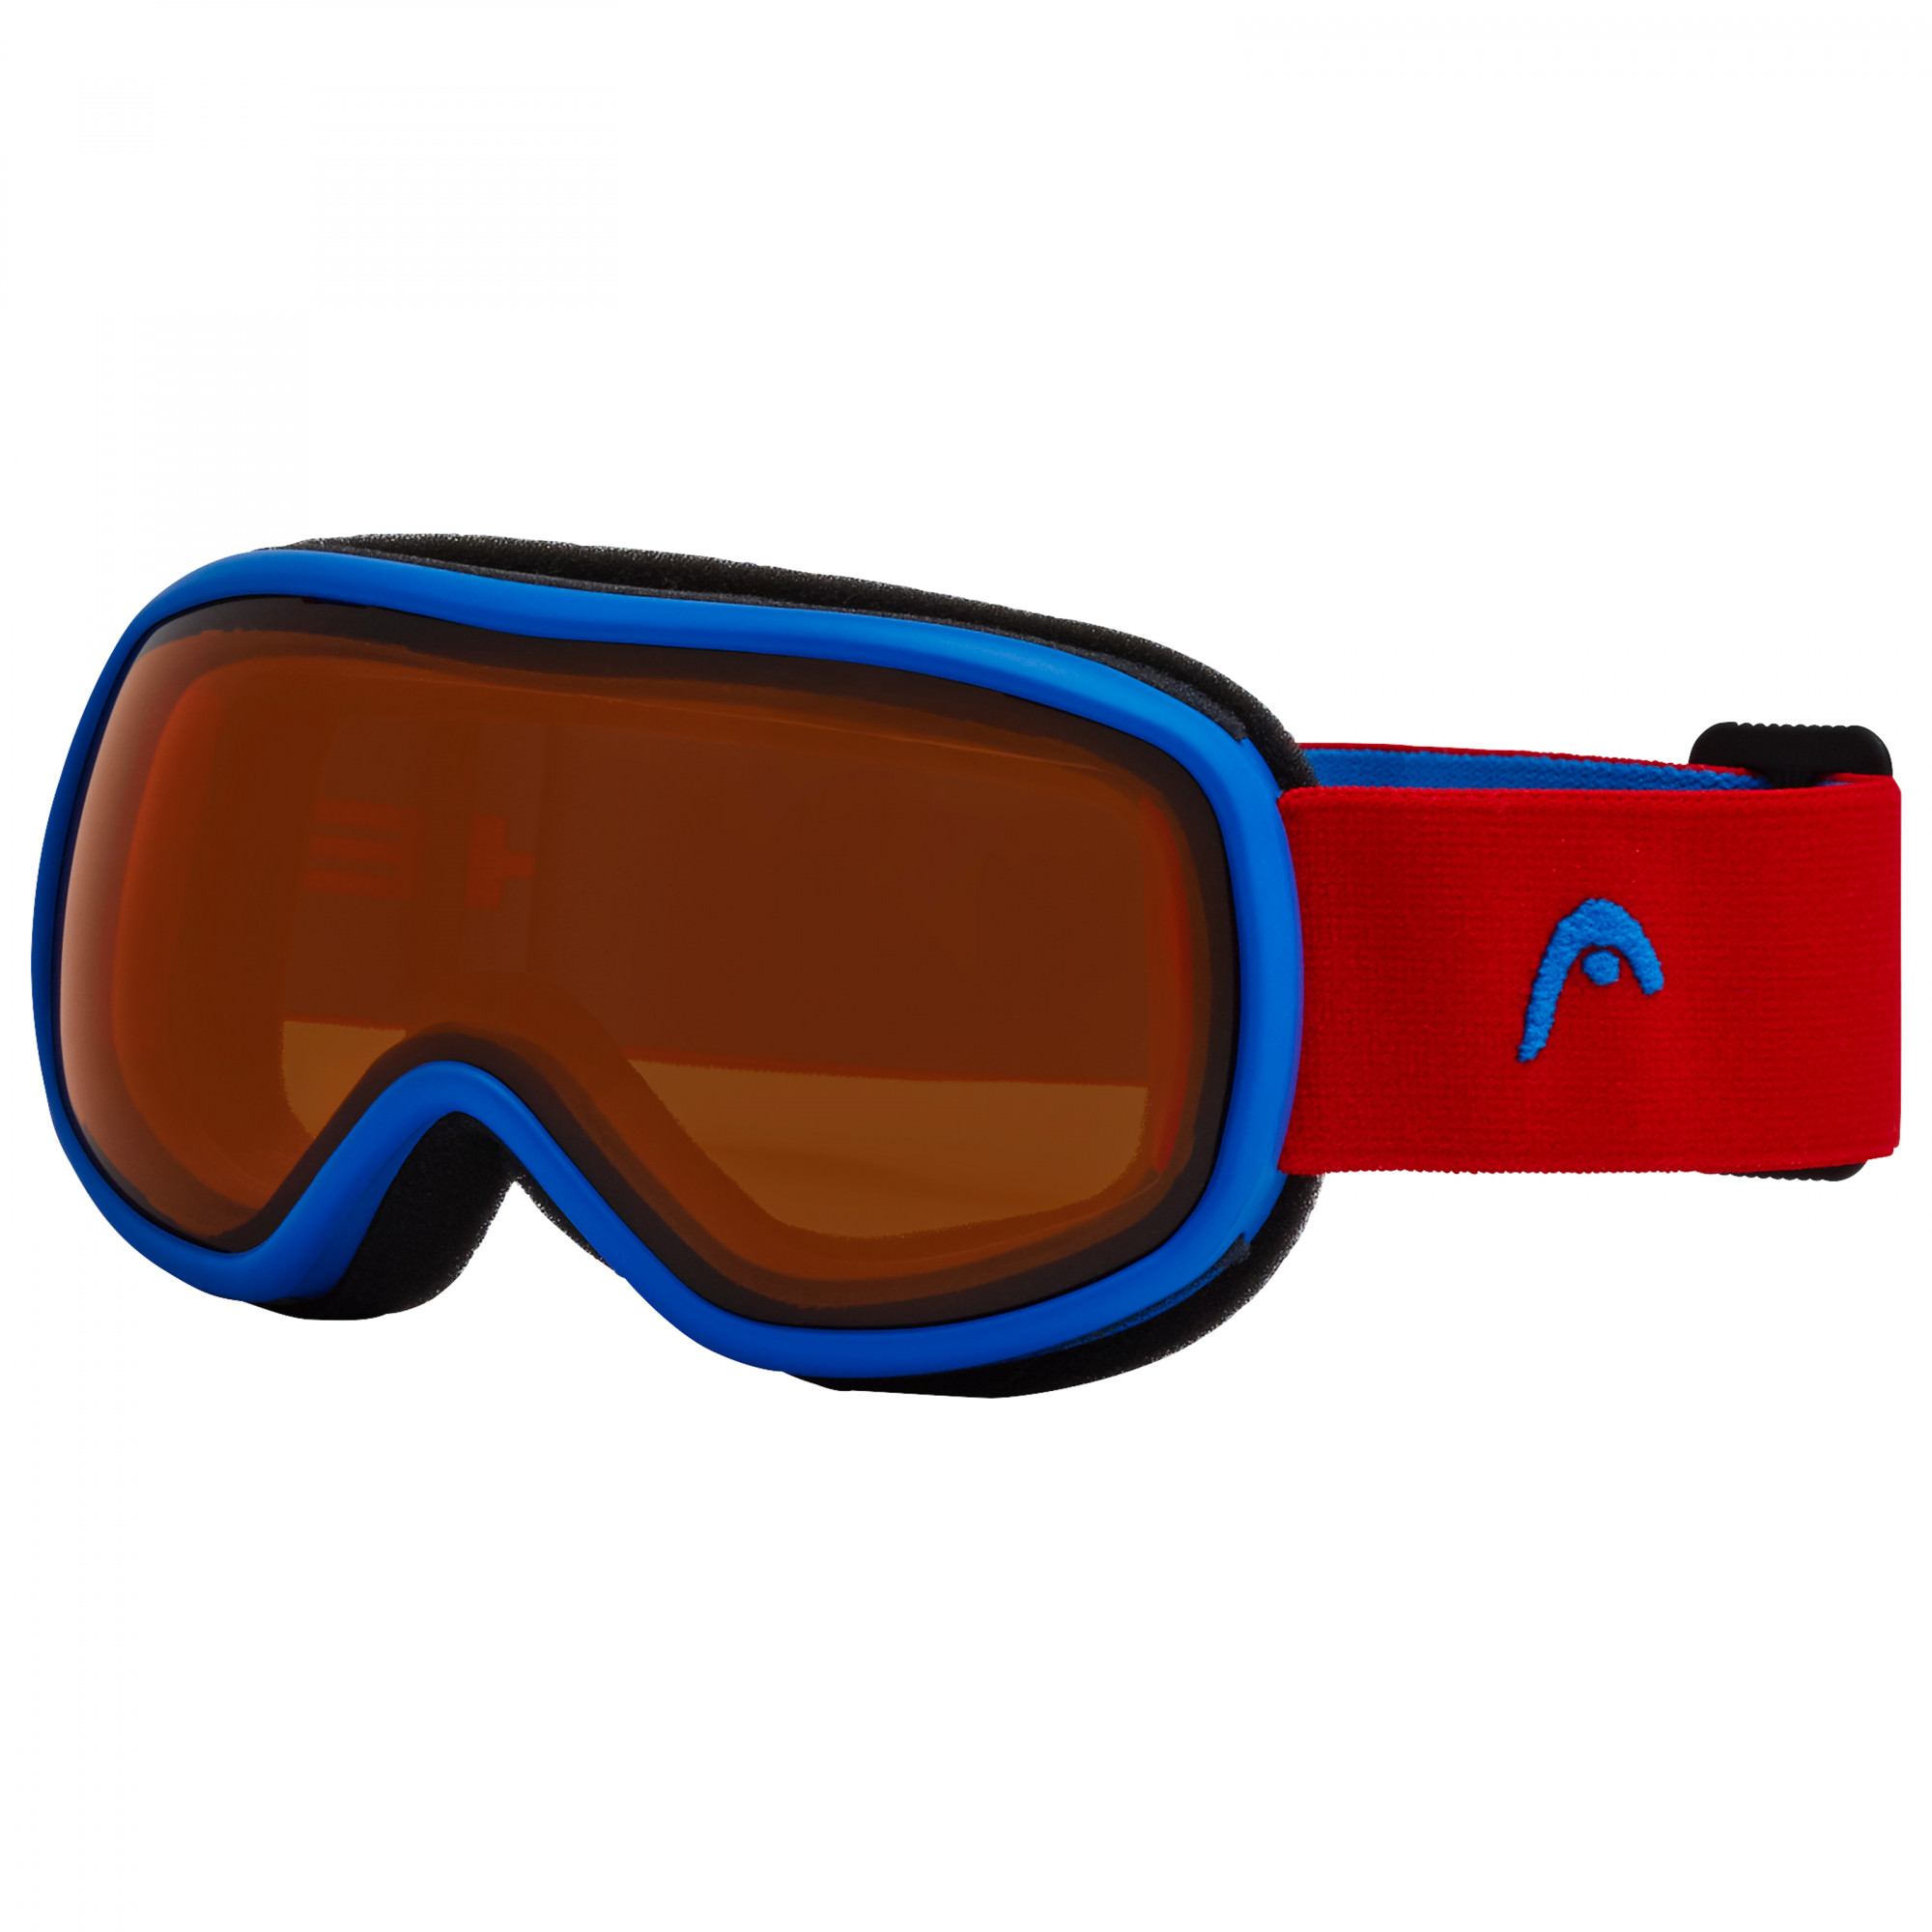 Очки горнолыжные HEAD NINJA JUNIOR lens blue/orange/red